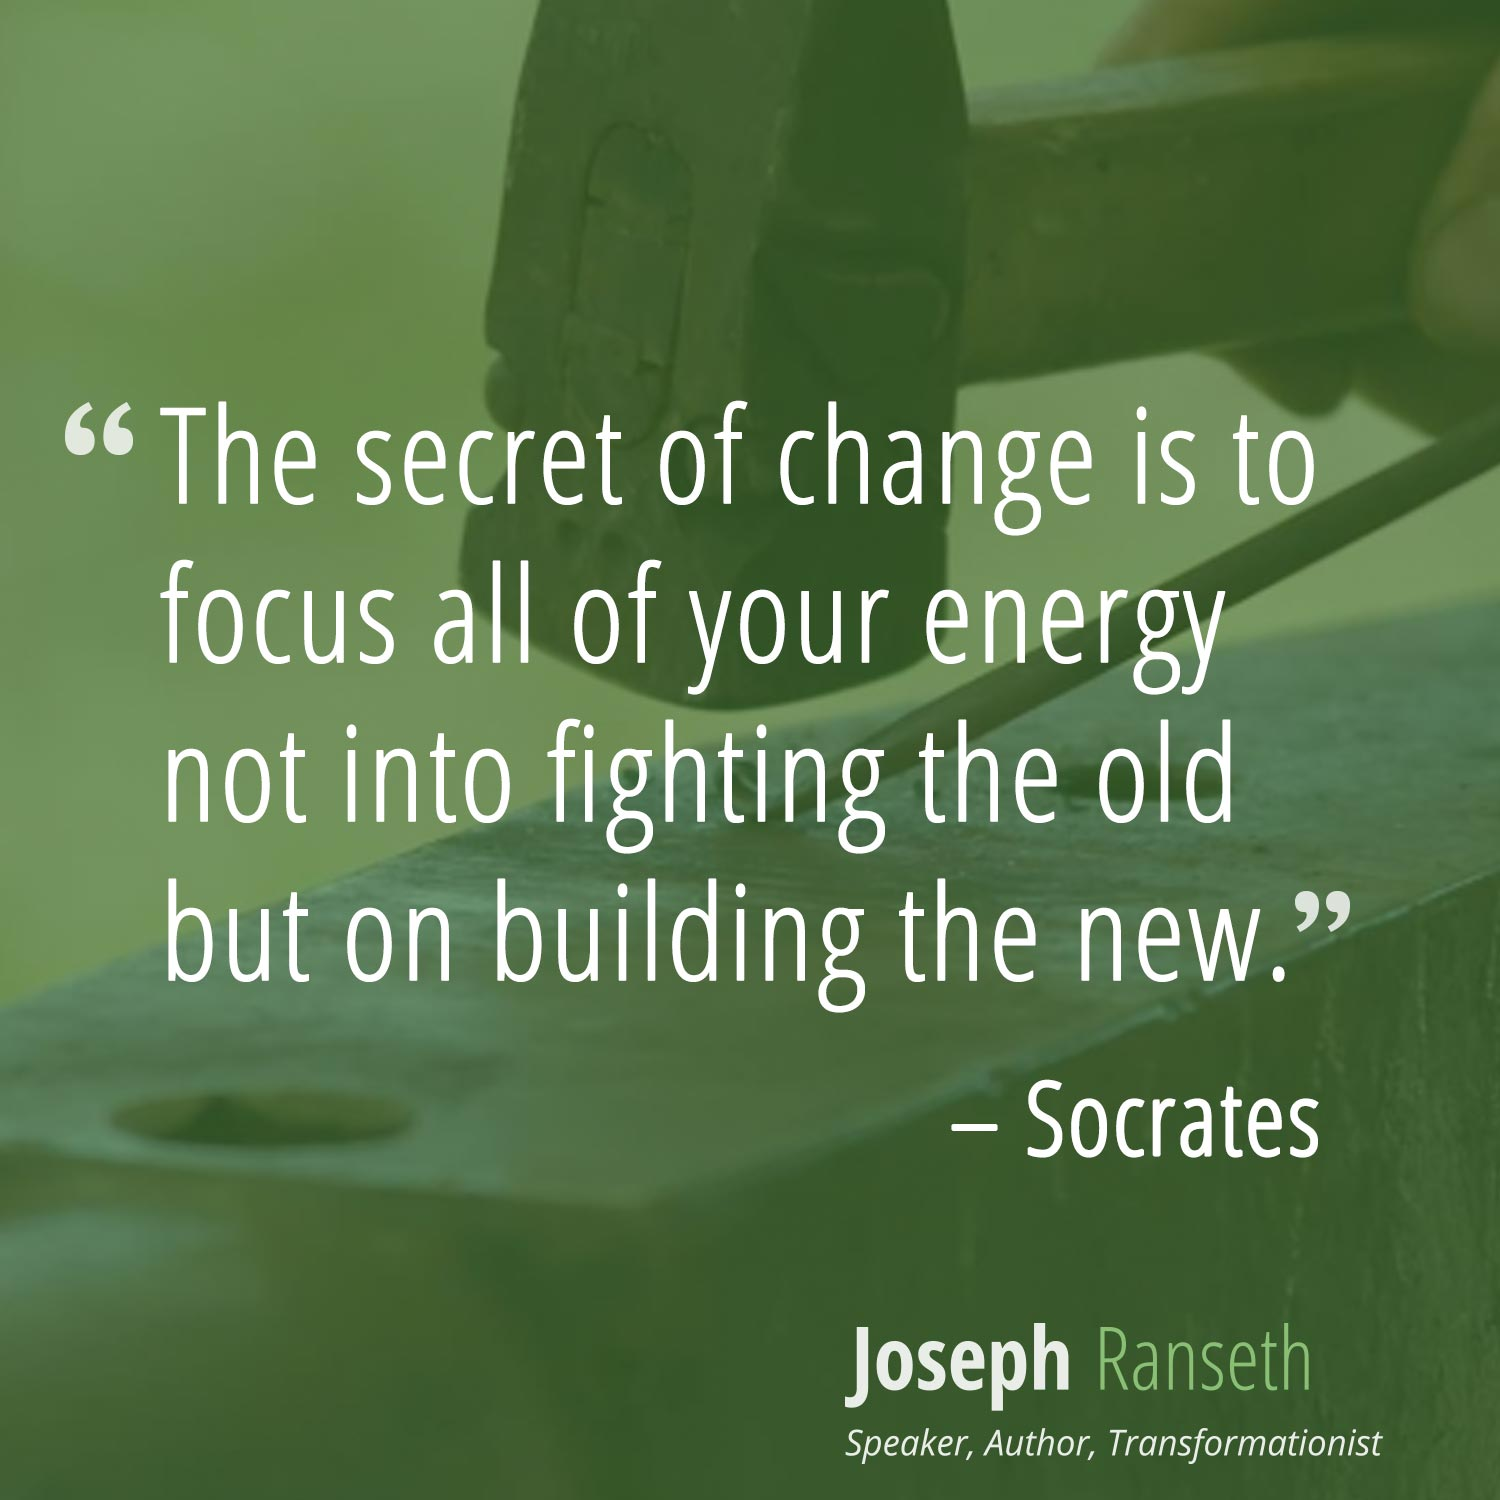 """""""The secret of change is to focus all of your energy not into fighting the old but on building the new."""" - Socrates #quotes #inspiration"""